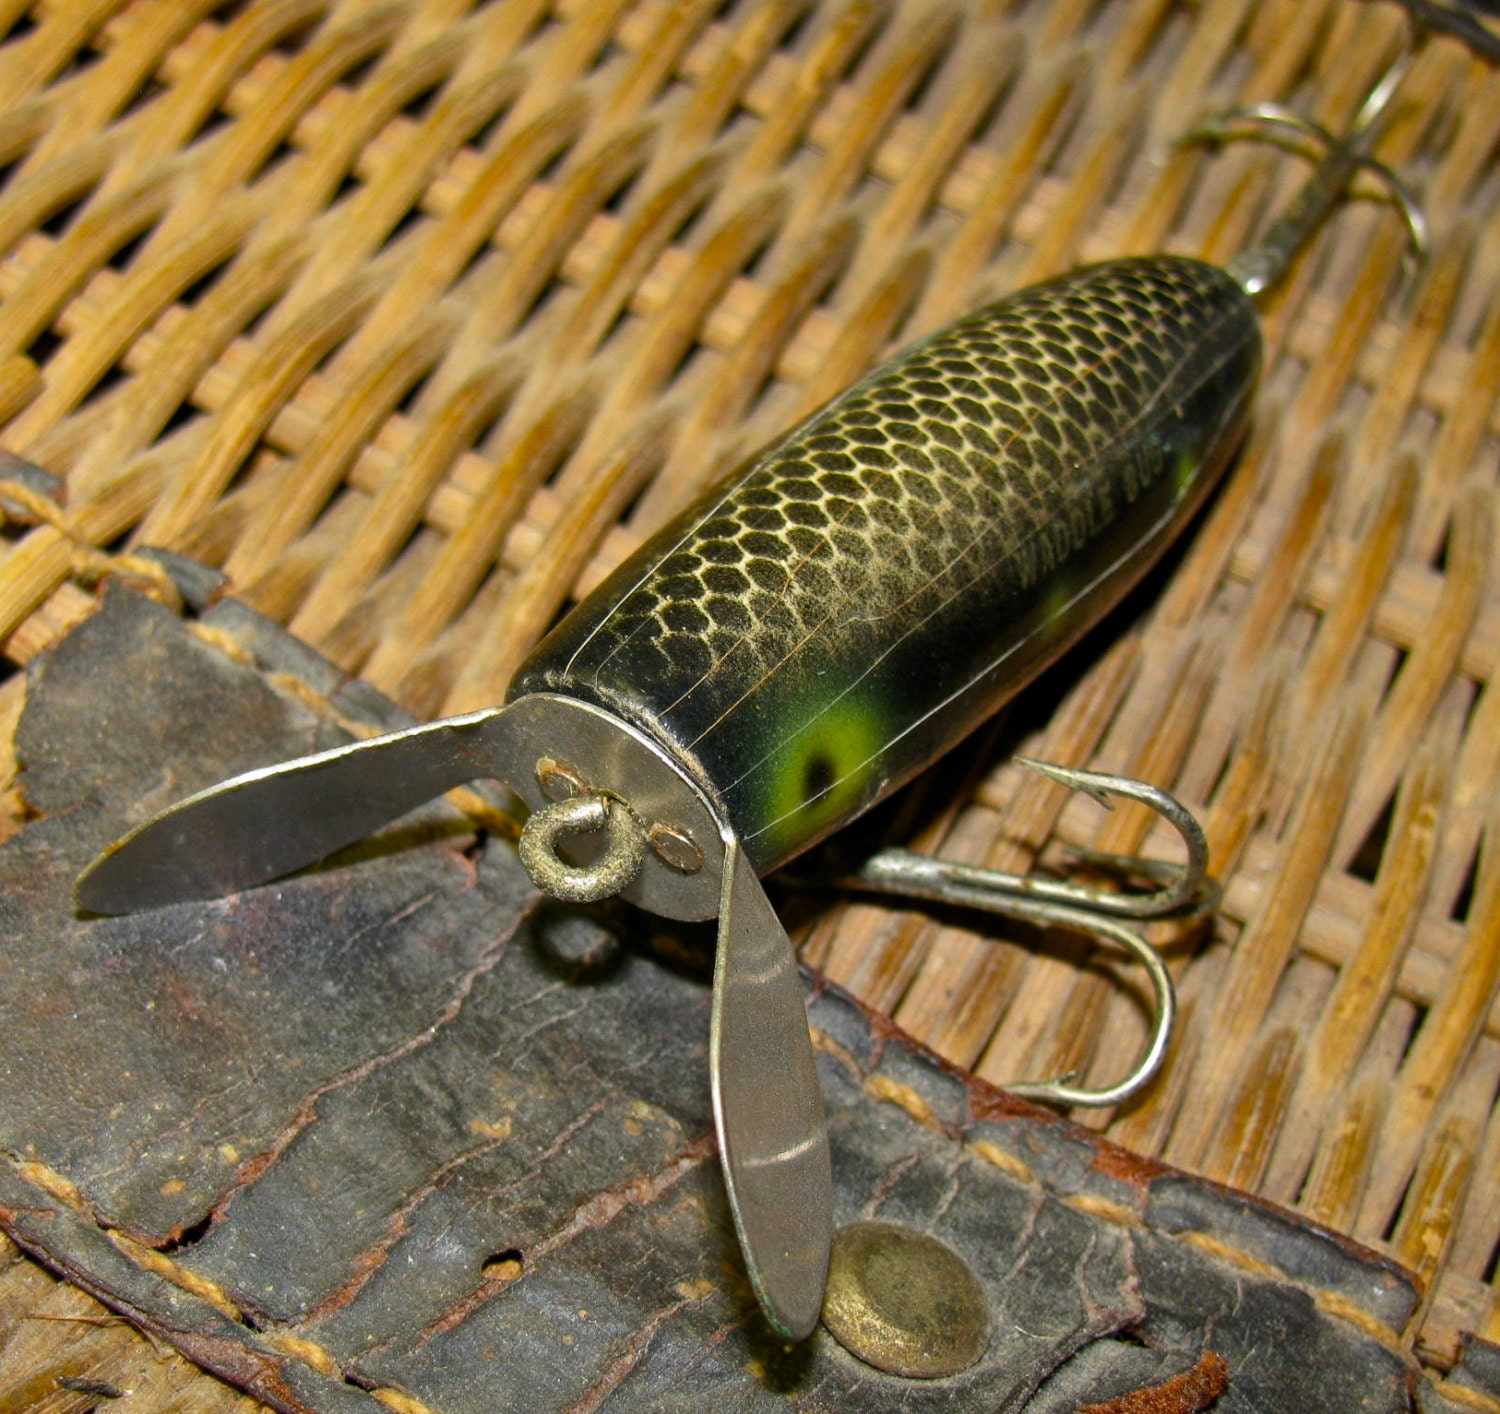 Vintage wooden waddle bug fishing lure frog scale unusual for Old wooden fishing lures